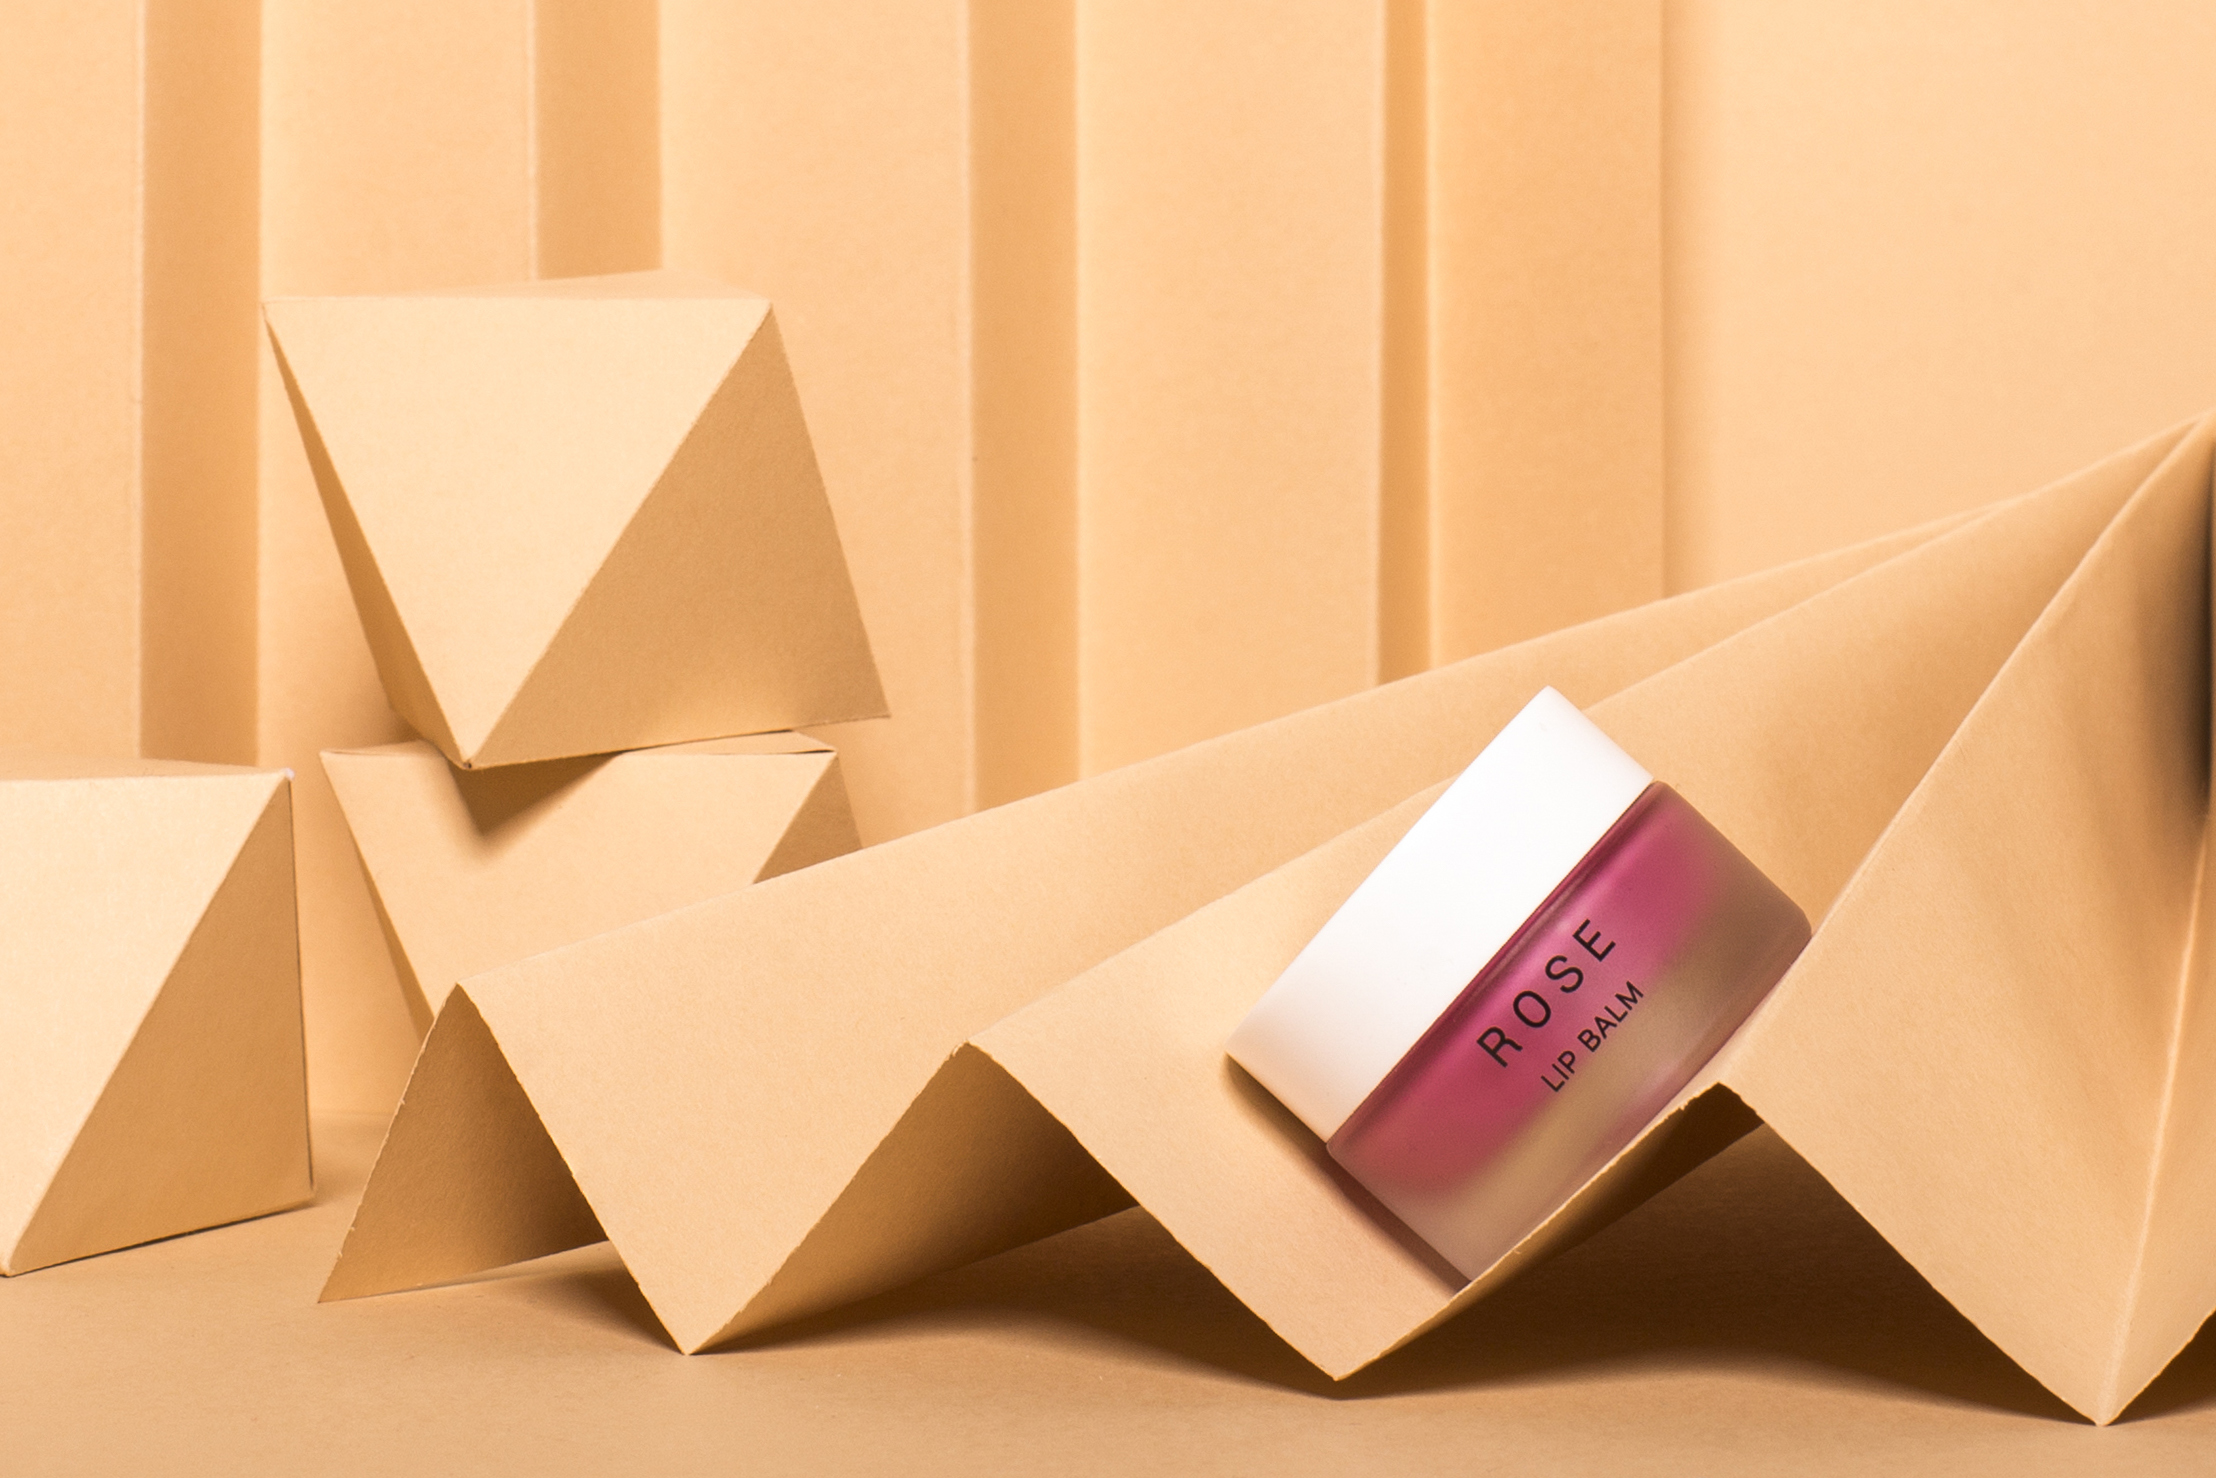 ONEST cosmetics for Theó & Co